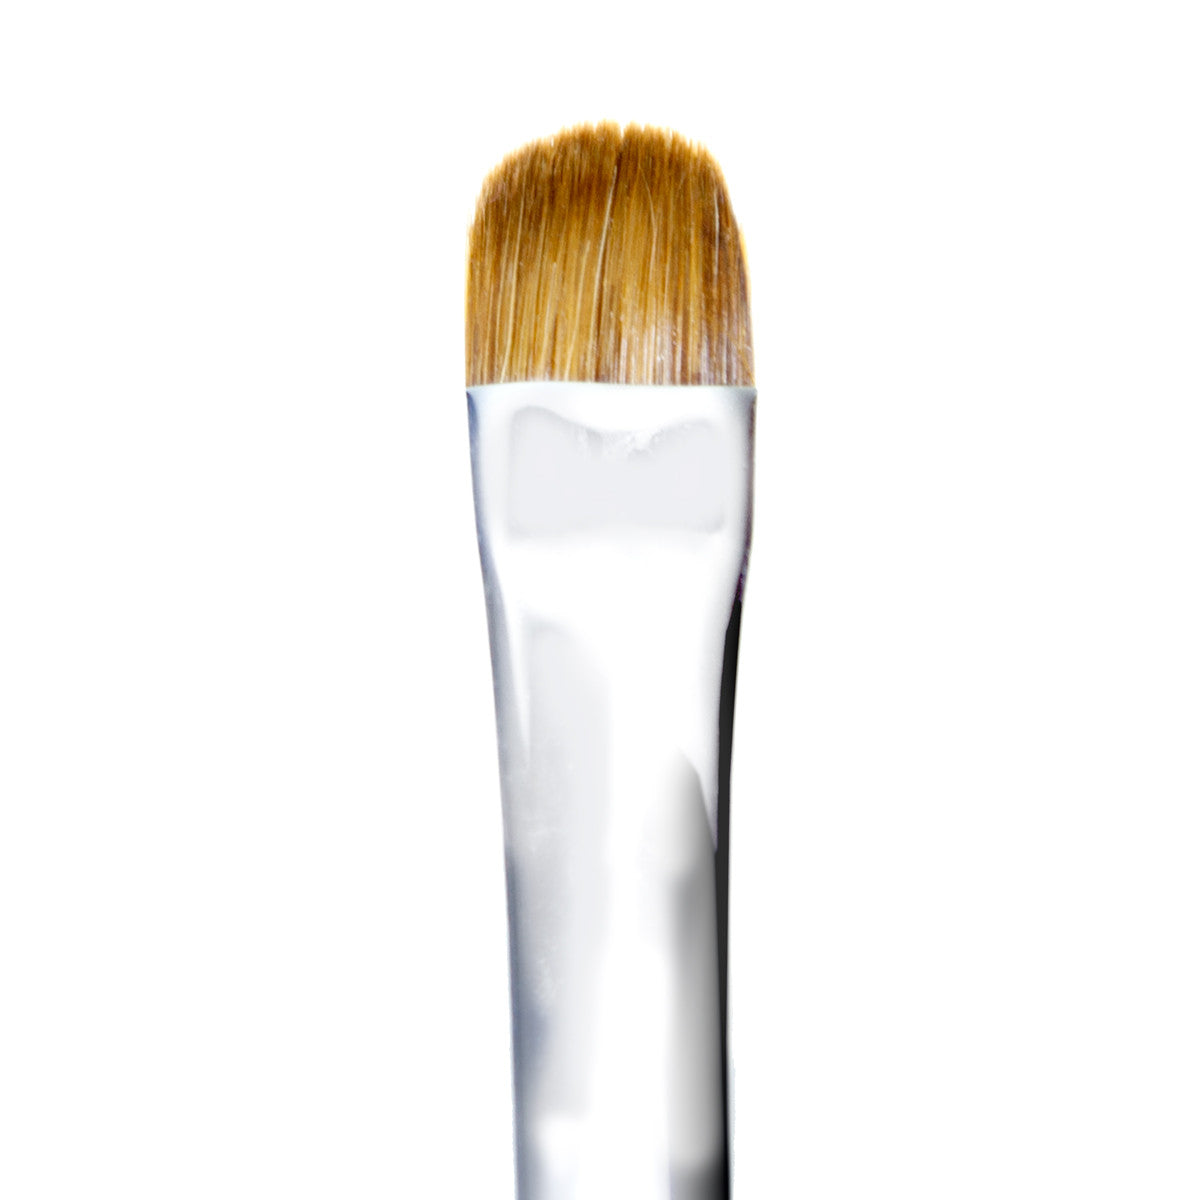 Morgan French Brush - Sable Hair with Dot Tool